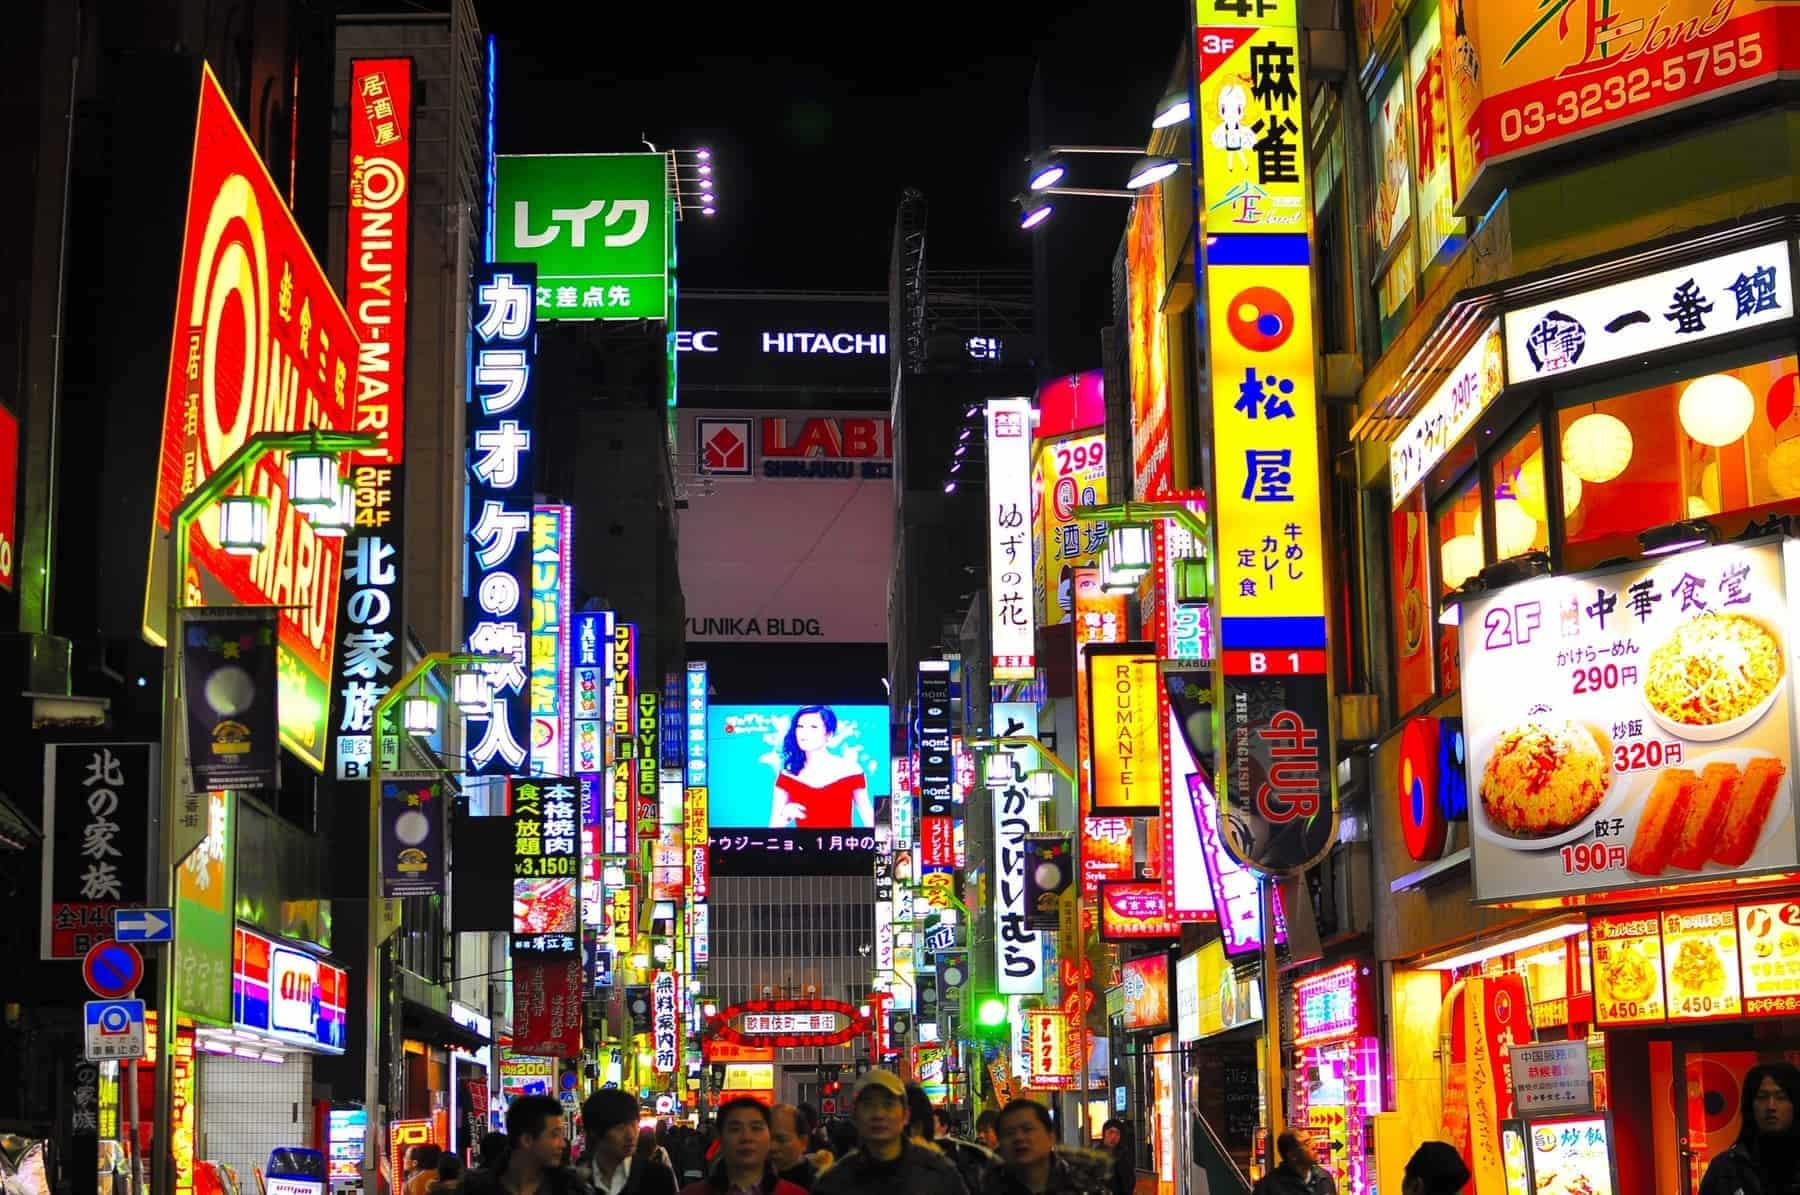 The neon light of Kabukicho, Shinjuku. The Tokyo redlight district.